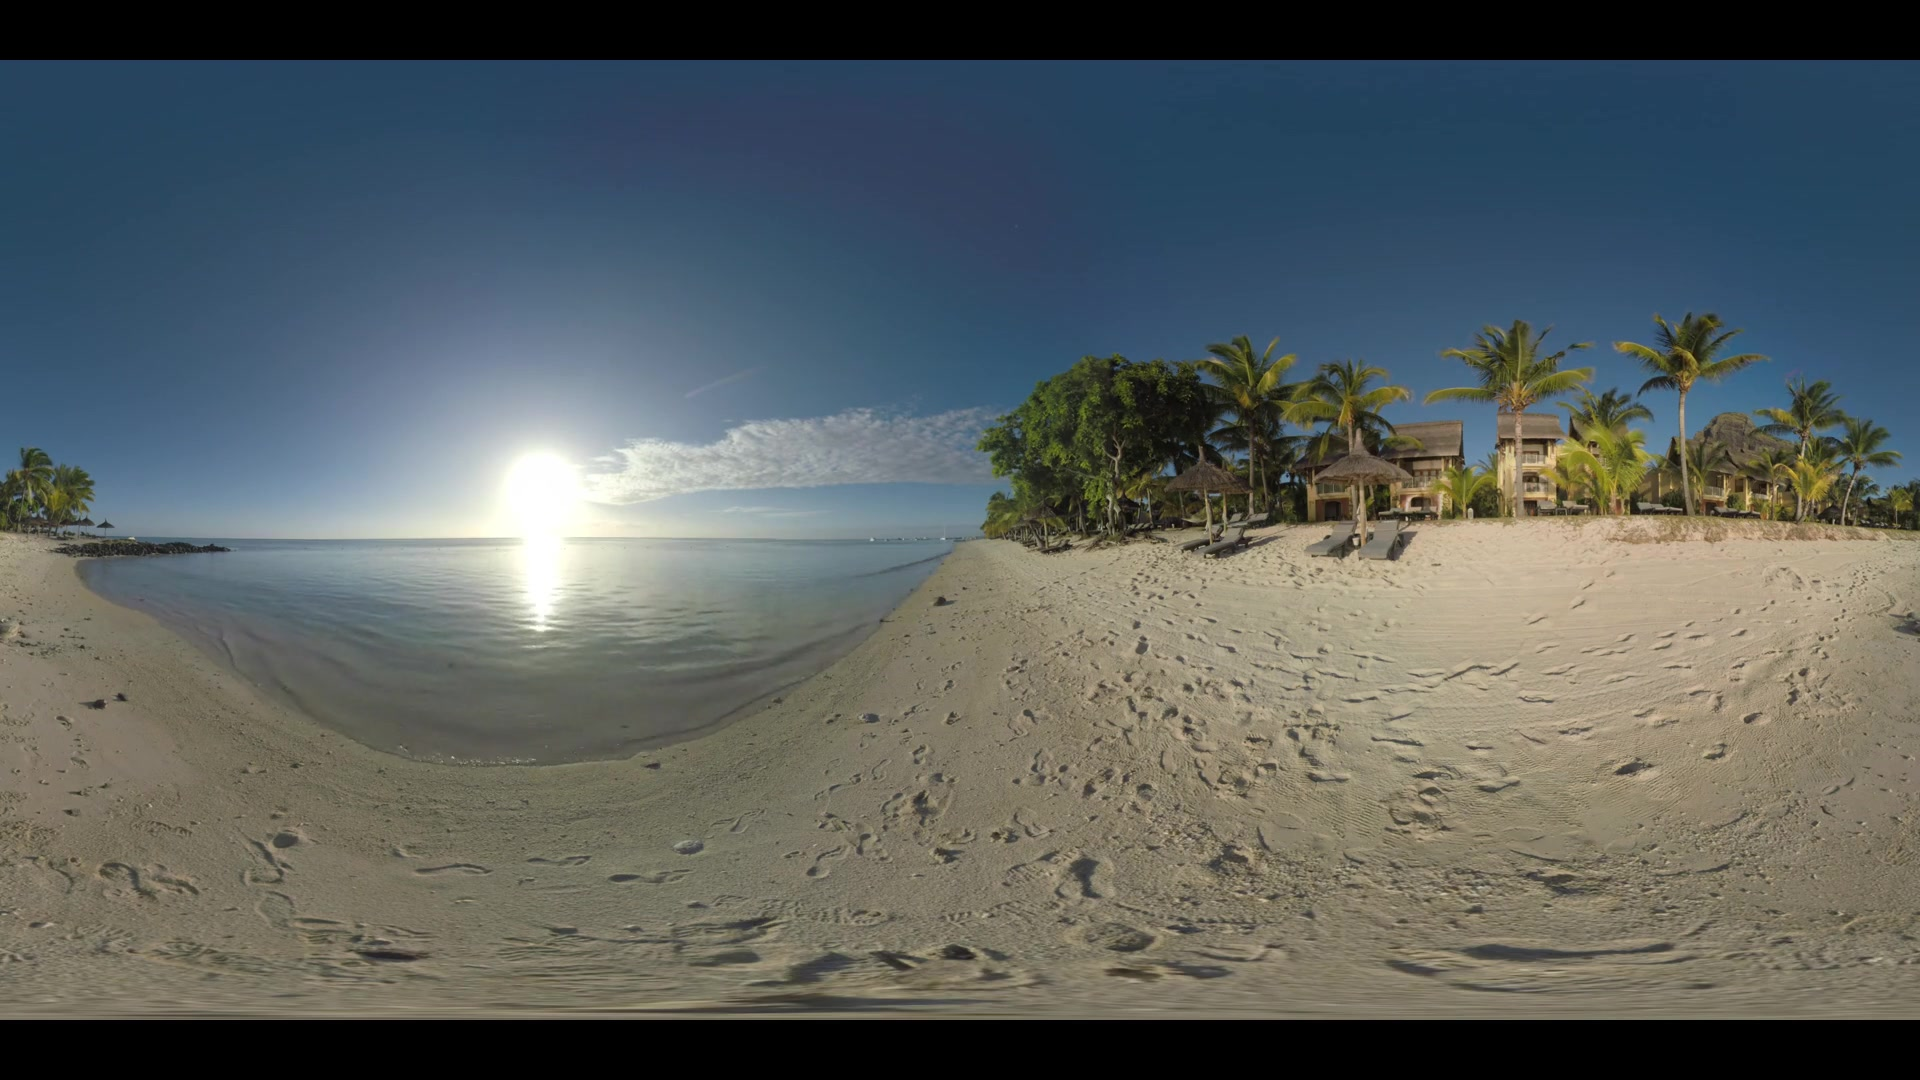 360 VR video. Vacation scene of tropical resort with hotels, chaise-longues and straw umbrellas on the ocean coast. Bright sun shining over the water and reflecting there, Mauritius